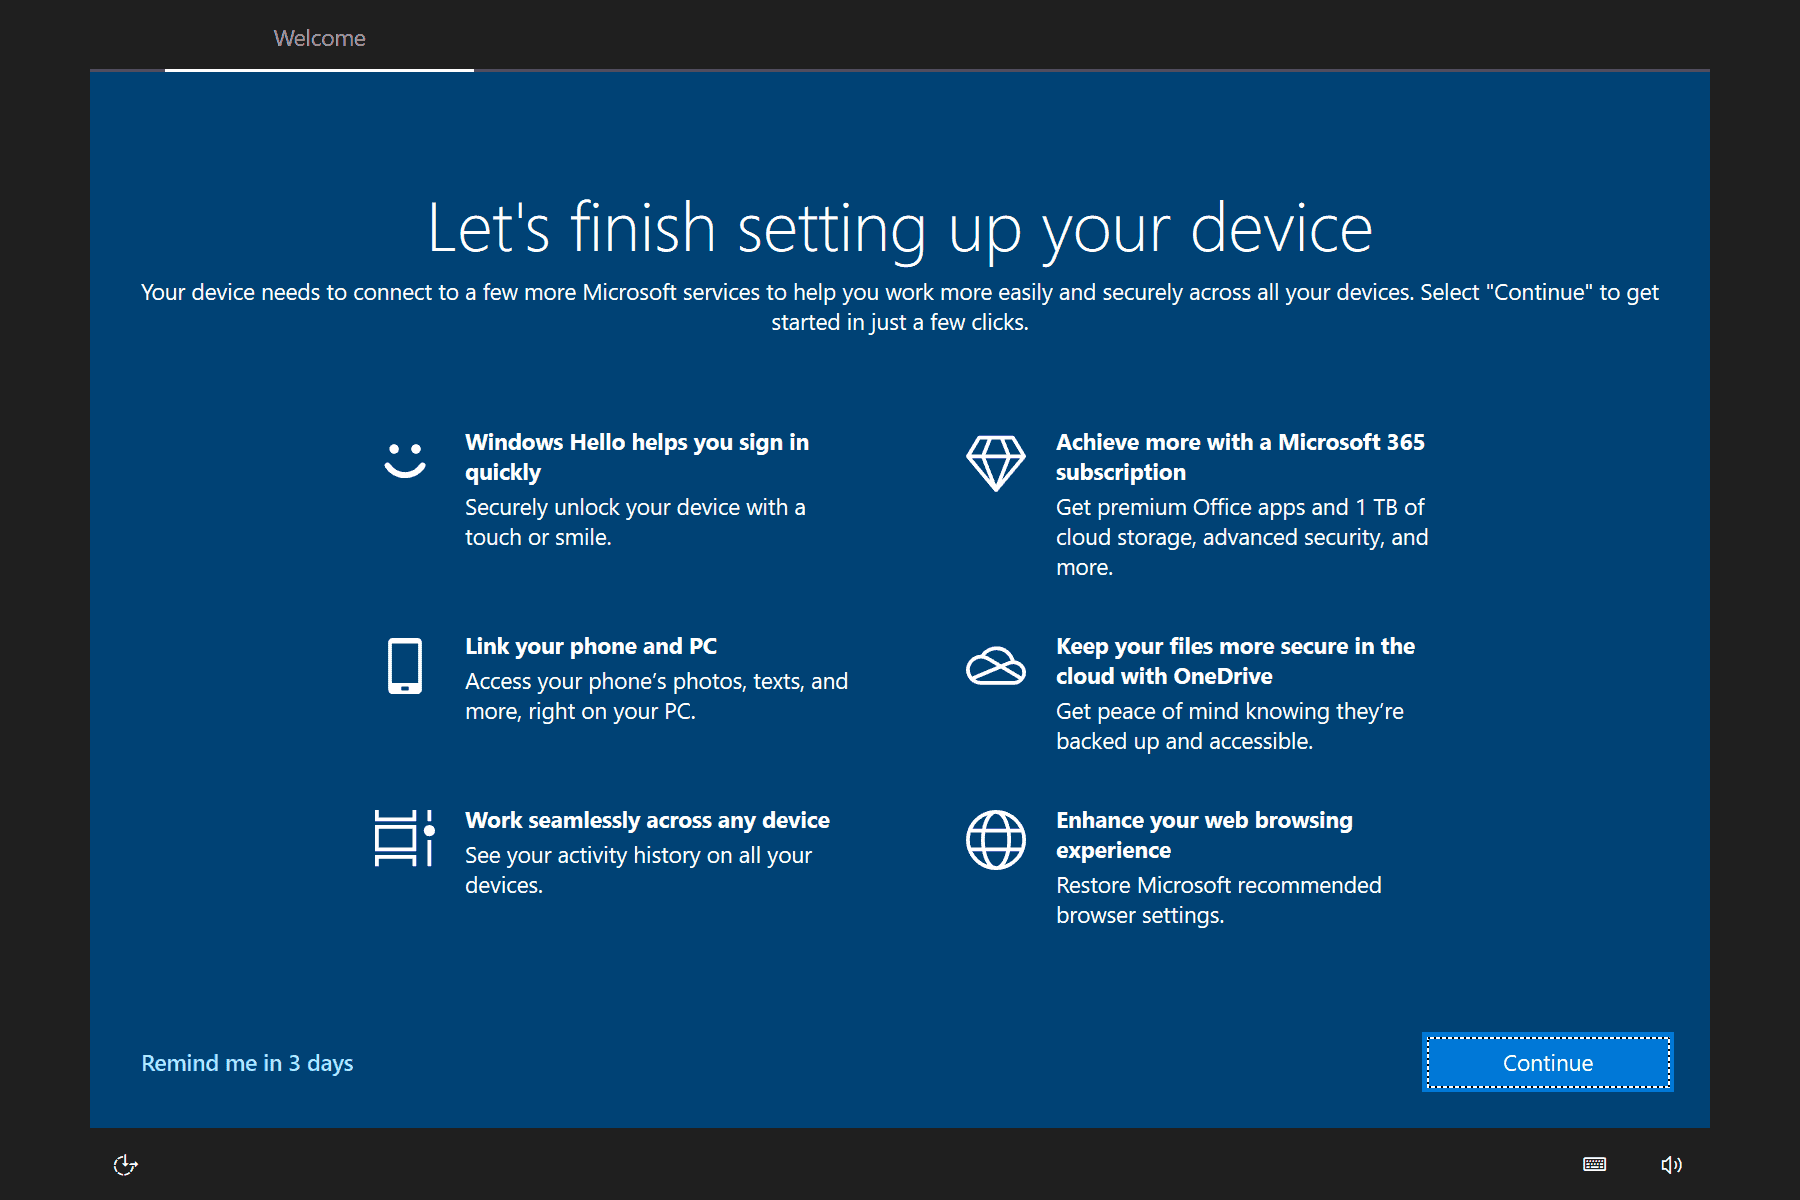 Windows 10 experience out of the box